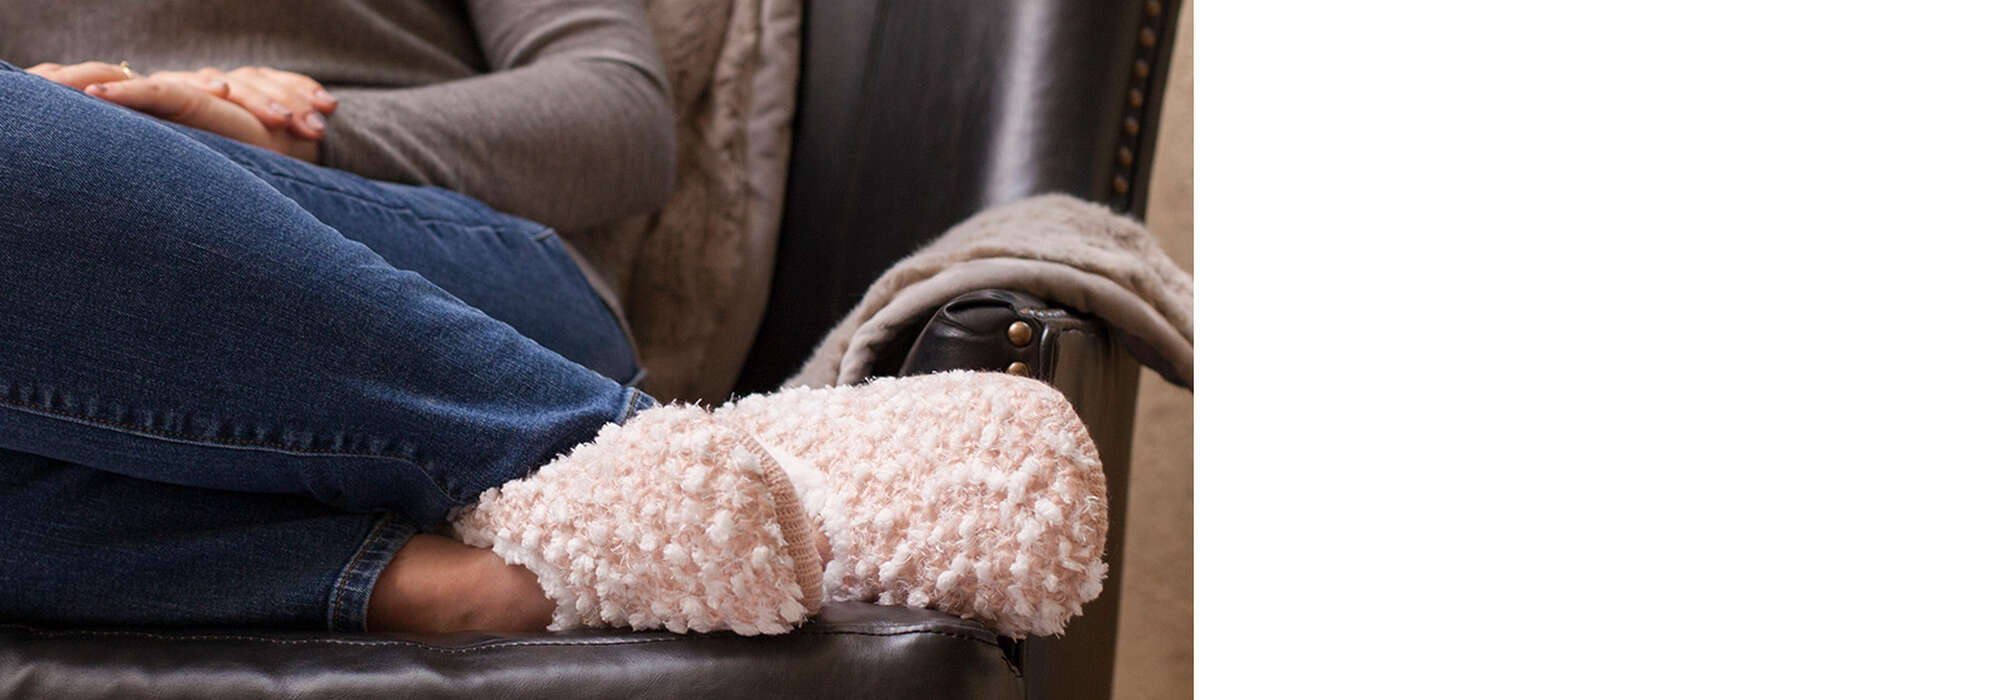 Commit to comfort year-round - our latest slipper socks are the perfect way to relax no matter the weather!